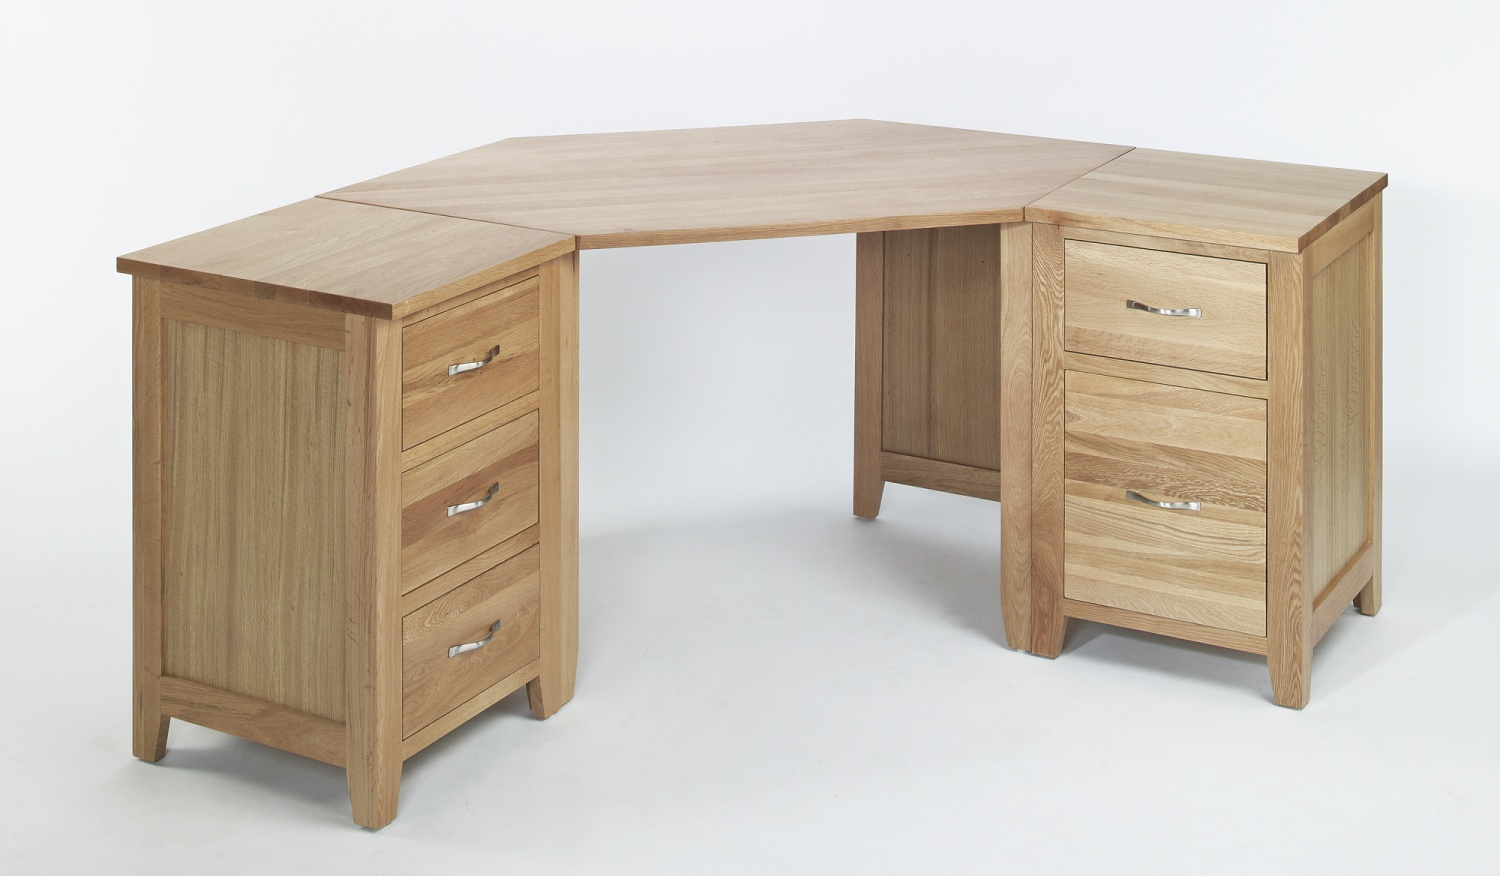 Compton solid oak furniture corner office pc computer desk ebay - Corner office desk ...